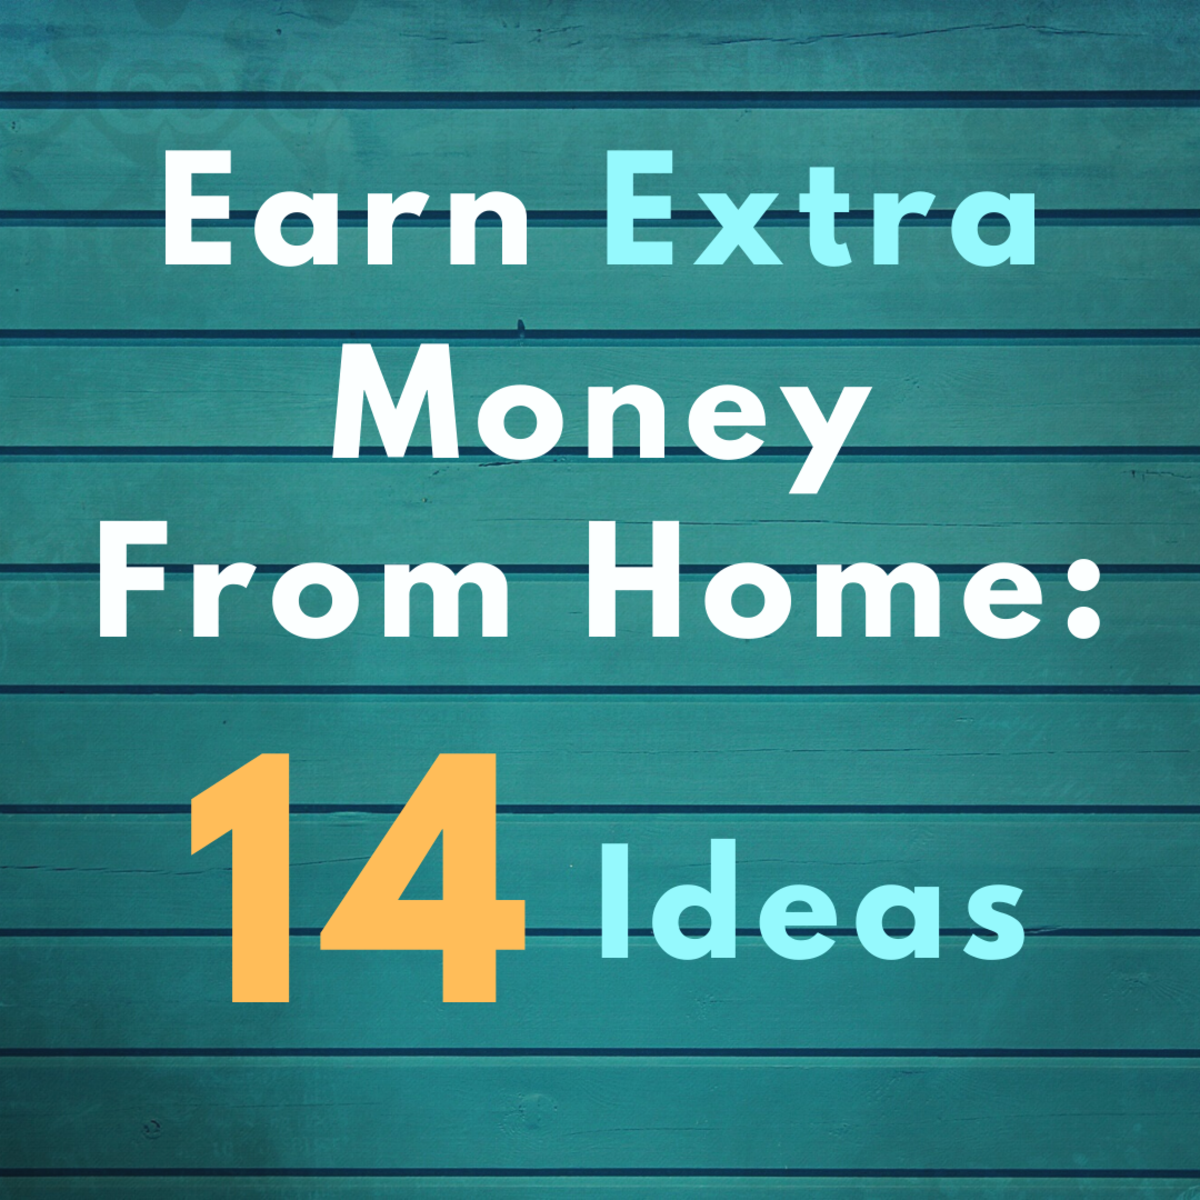 Get some great ideas for ways to earn extra cash in your spare time.